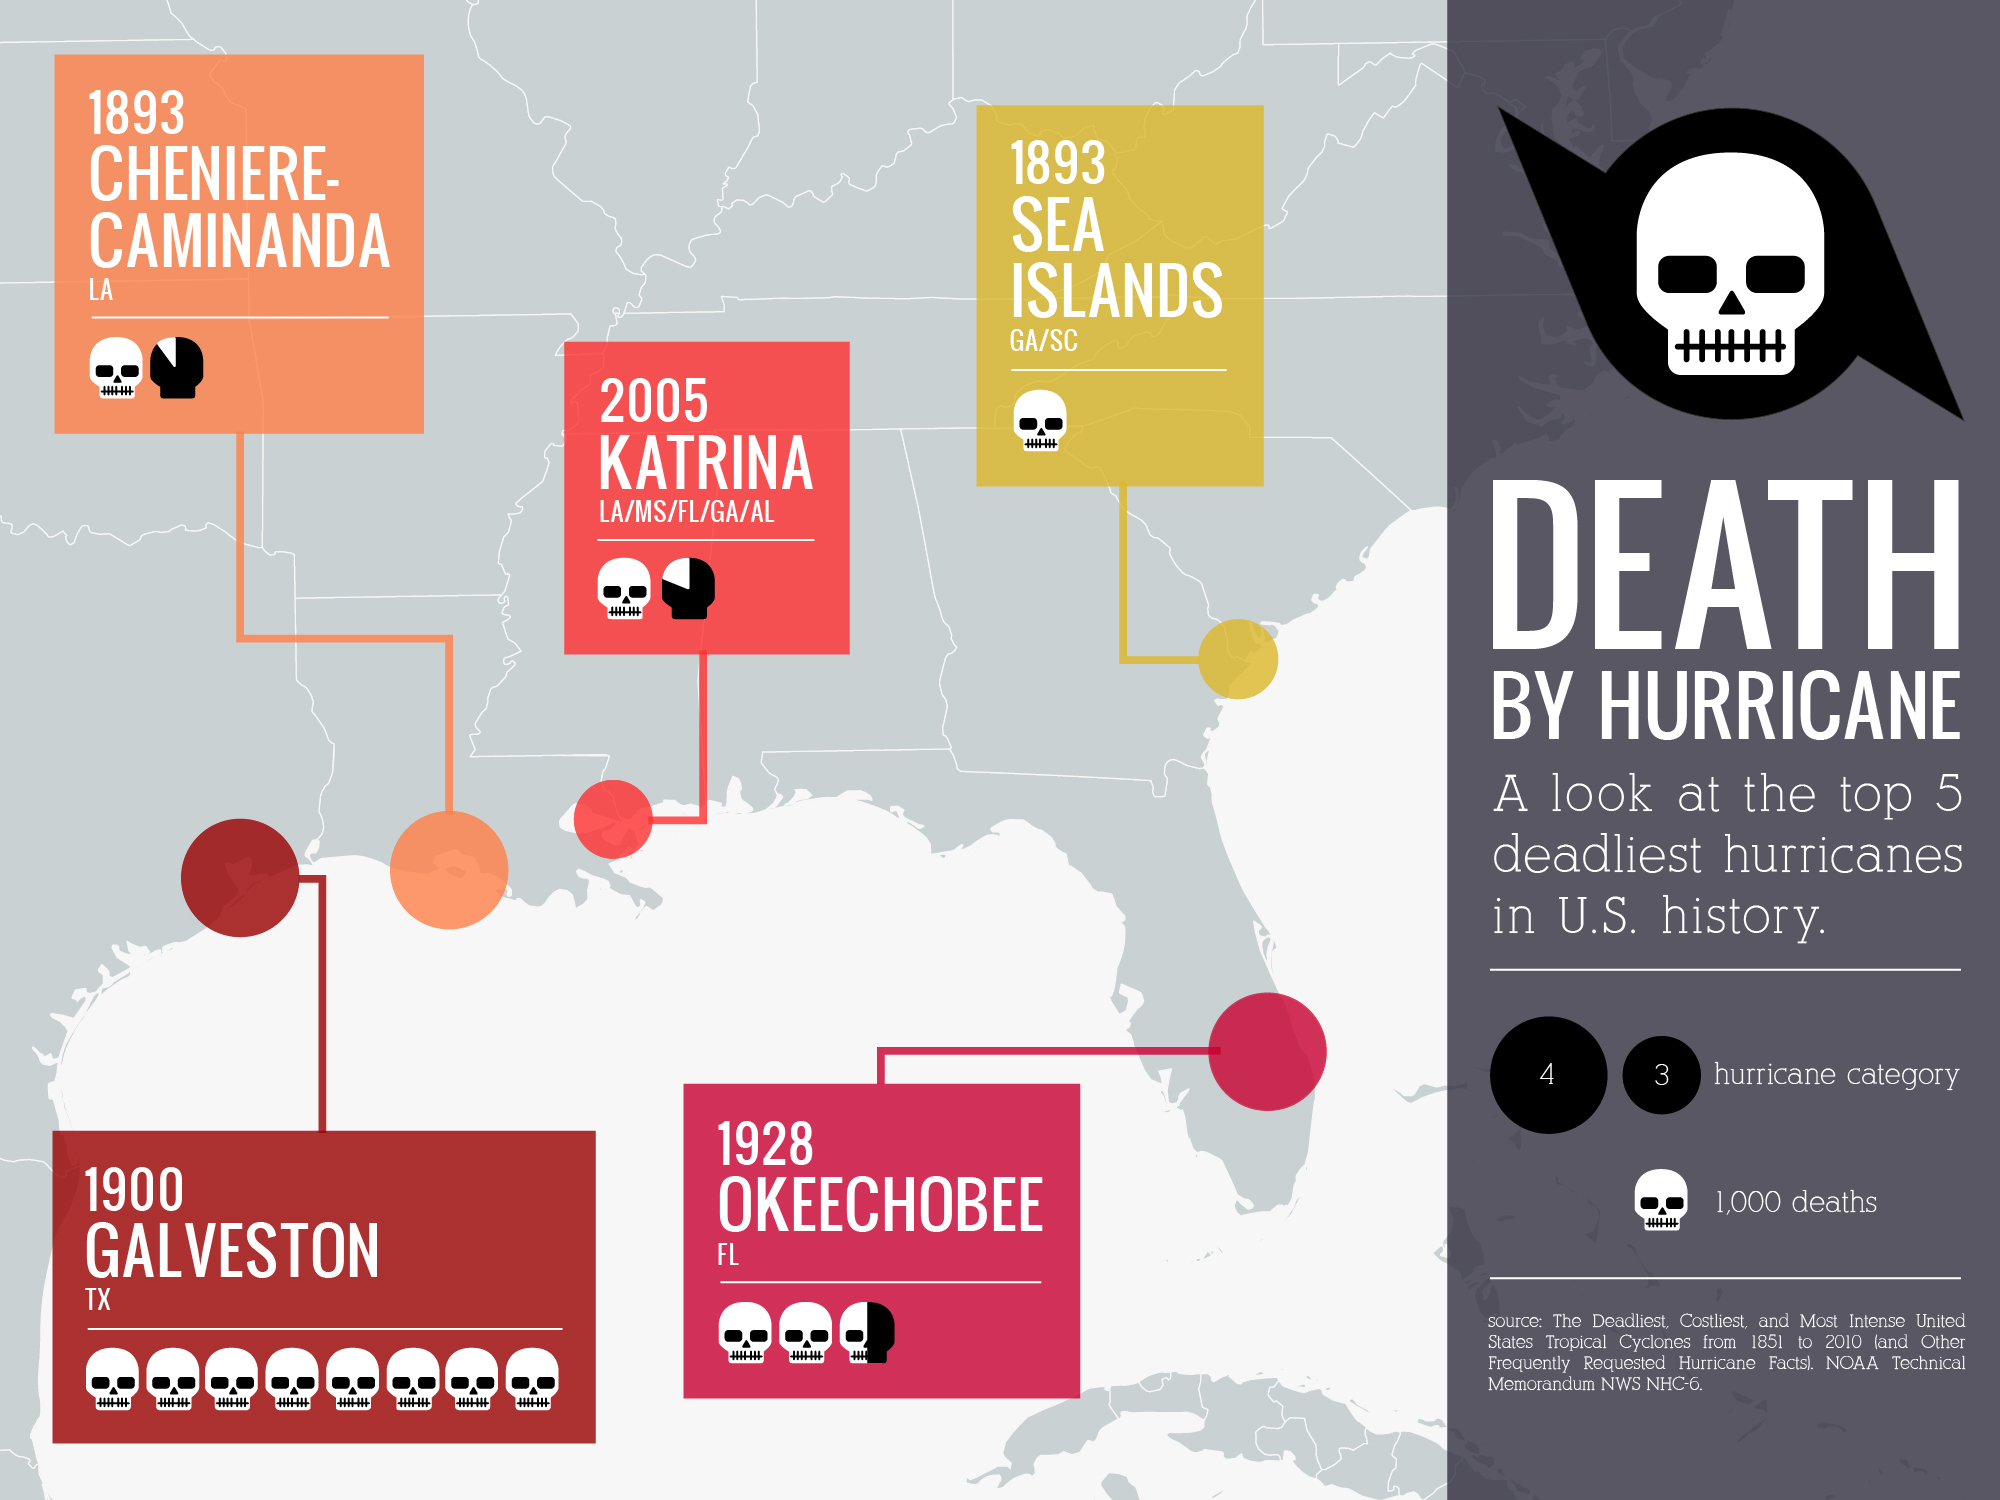 Death by Hurricane - image 2 - student project